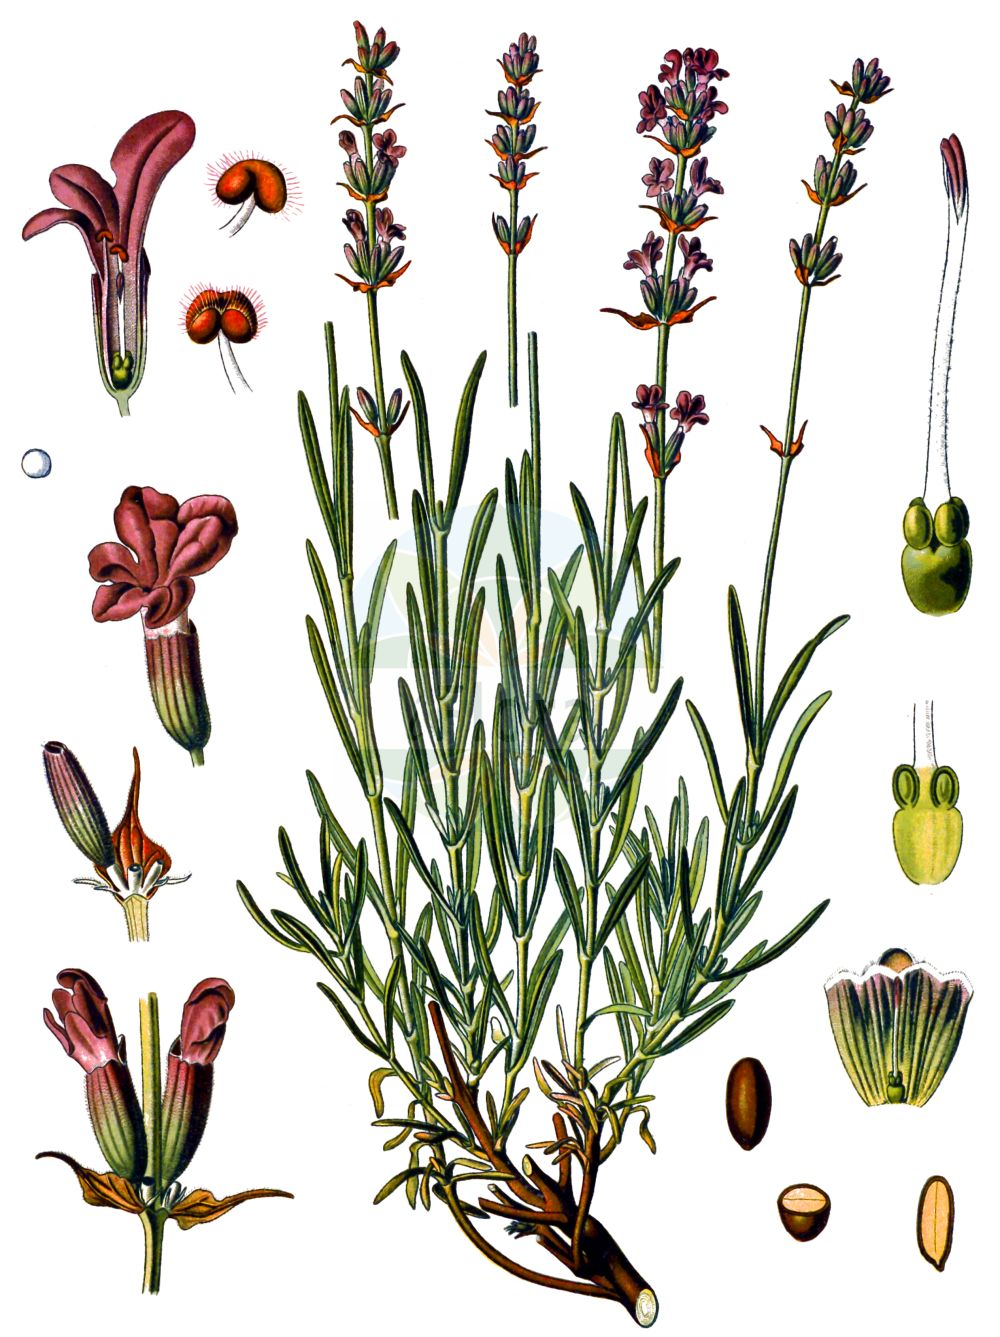 Historische Abbildung von Lavandula angustifolia (Echter Lavendel - Garden Lavender). Das Bild zeigt Blatt, Bluete, Frucht und Same. ---- Historical Drawing of Lavandula angustifolia (Echter Lavendel - Garden Lavender).The image is showing leaf, flower, fruit and seed.(Lavandula angustifolia,Echter Lavendel,Garden Lavender,Lavandula angustifolia,Echter Lavendel,Schmalblatt-Lavendel,Schmalblaettriger Lavendel,Garden Lavender,Common Lavender,English Lavender,Lavender,French Lavender,Lavandula,Lavendel,Lavender,Lamiaceae,Lippenbluetengewaechse,Lippenbluetler,Nettle family,Blatt,Bluete,Frucht,Same,leaf,flower,fruit,seed,Koehler (1883-1898))